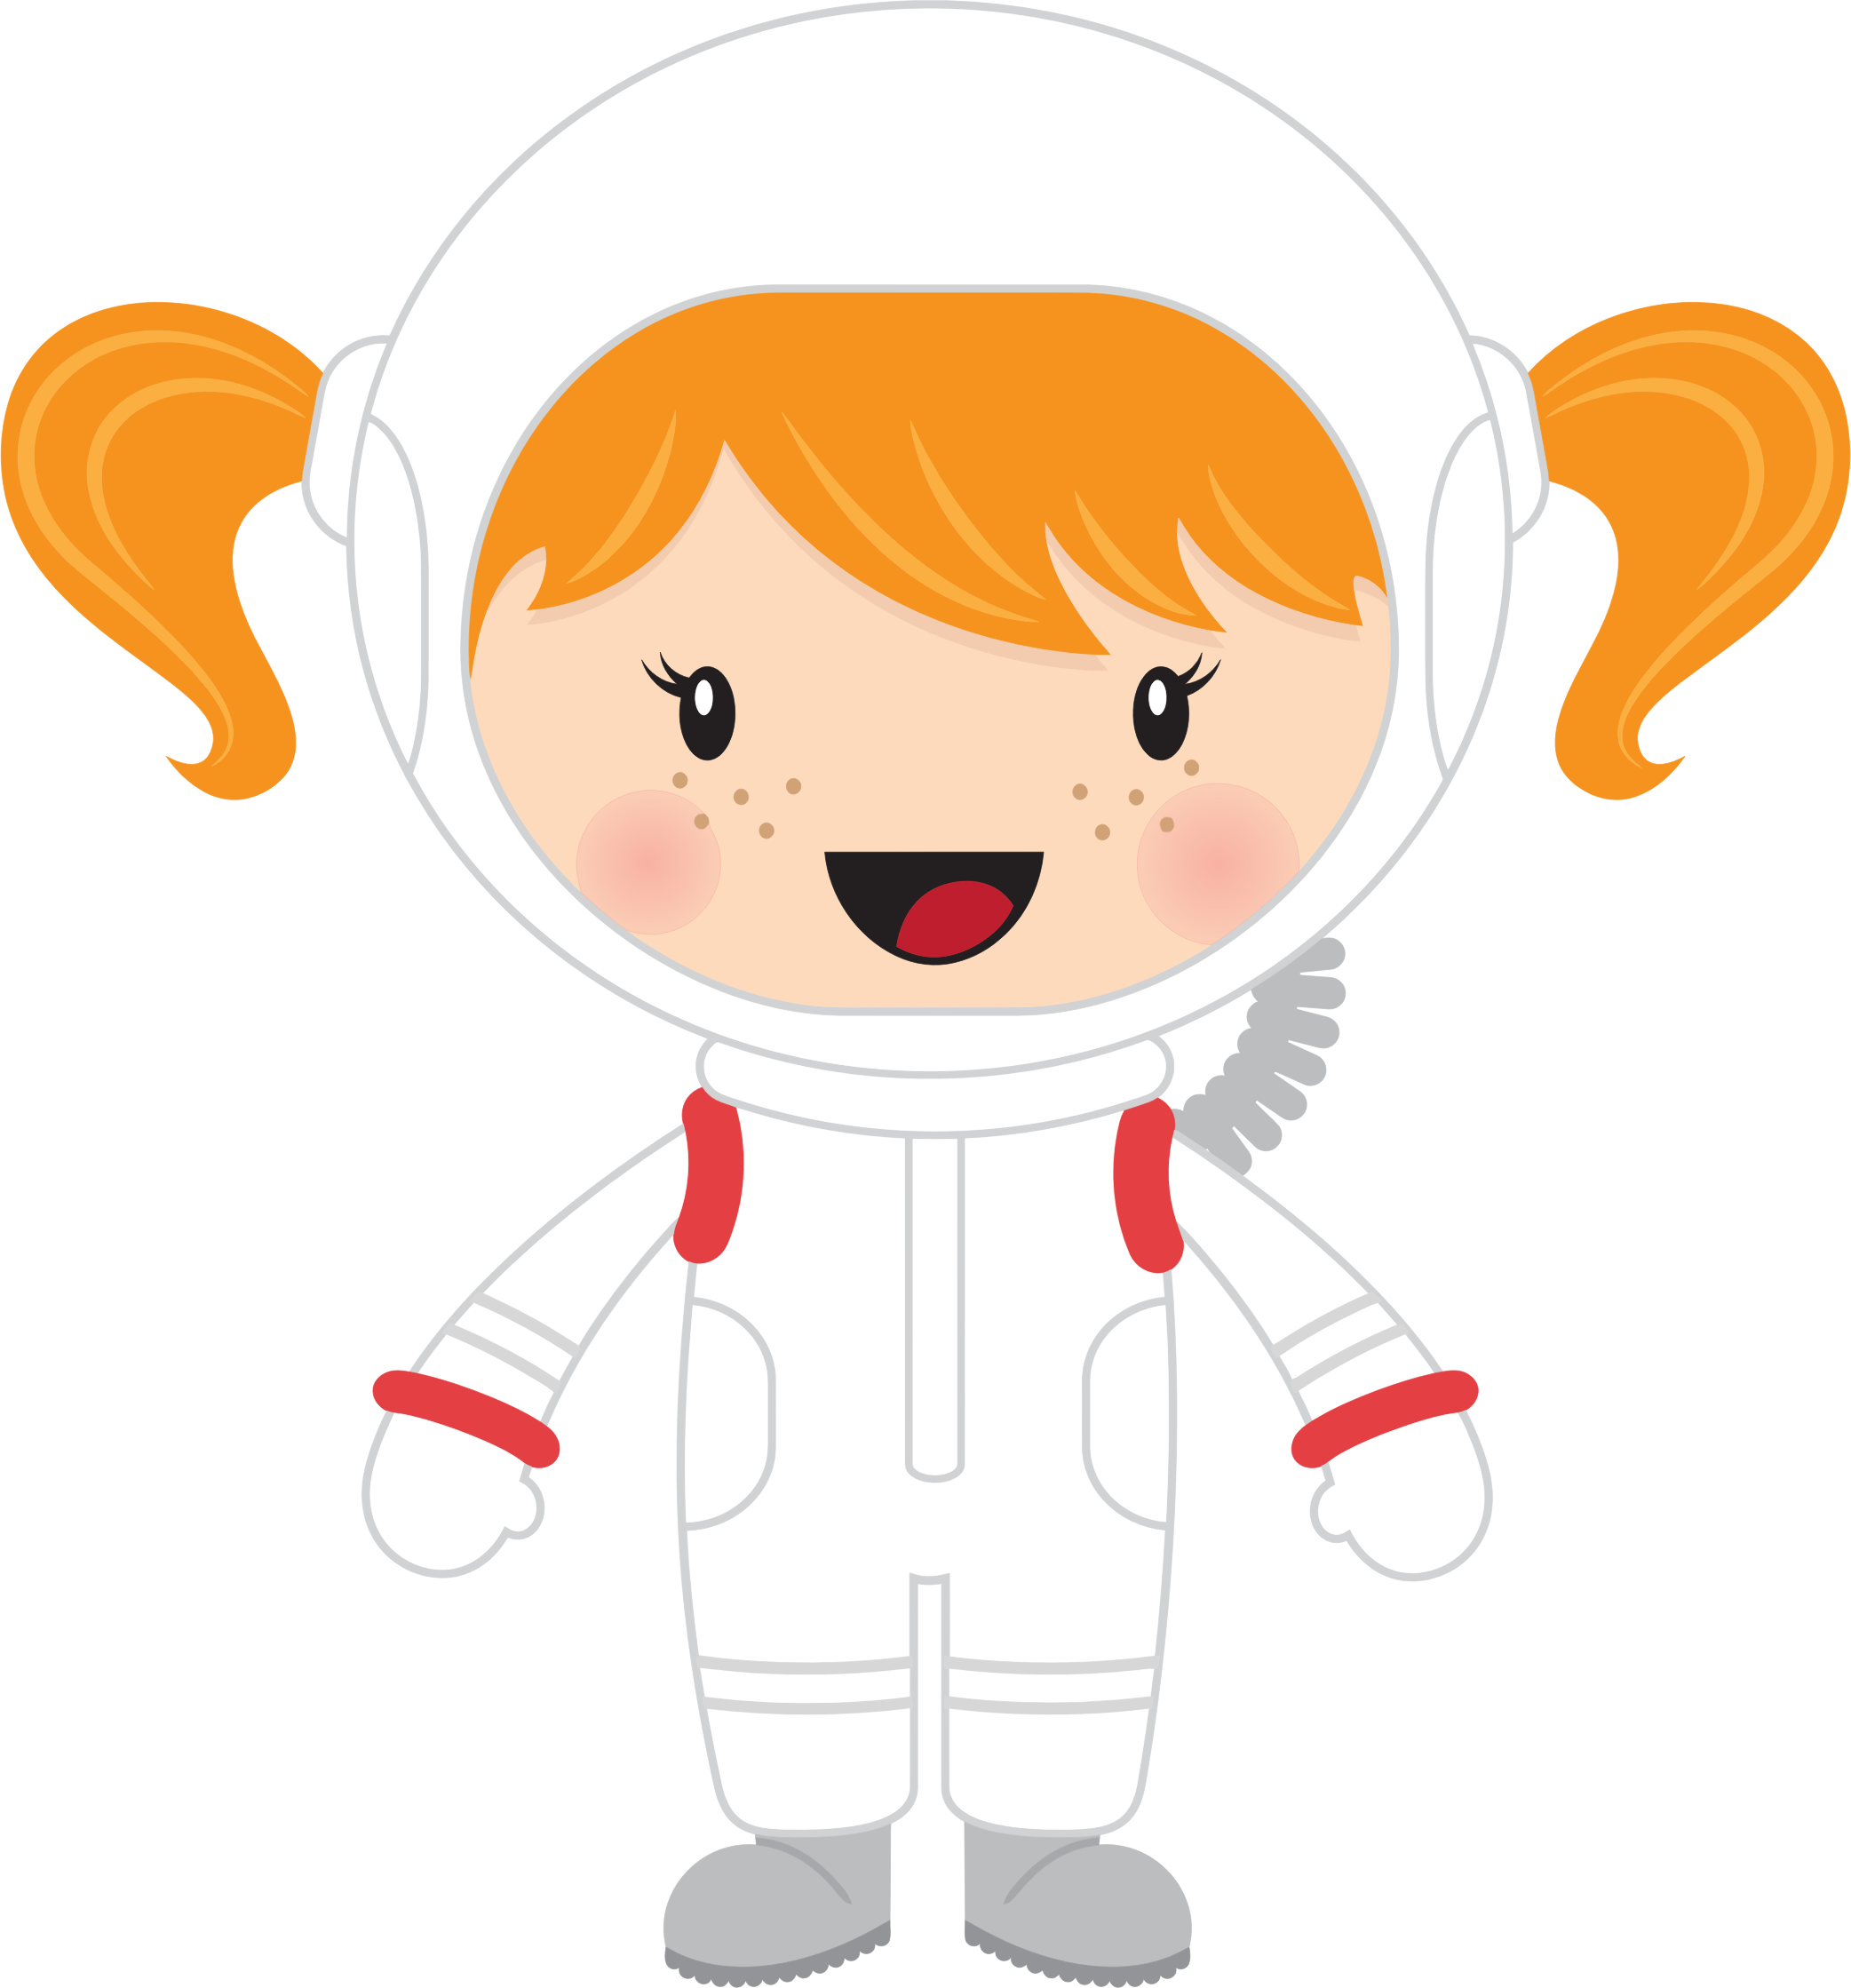 Little Girl Astronaut by GDJ